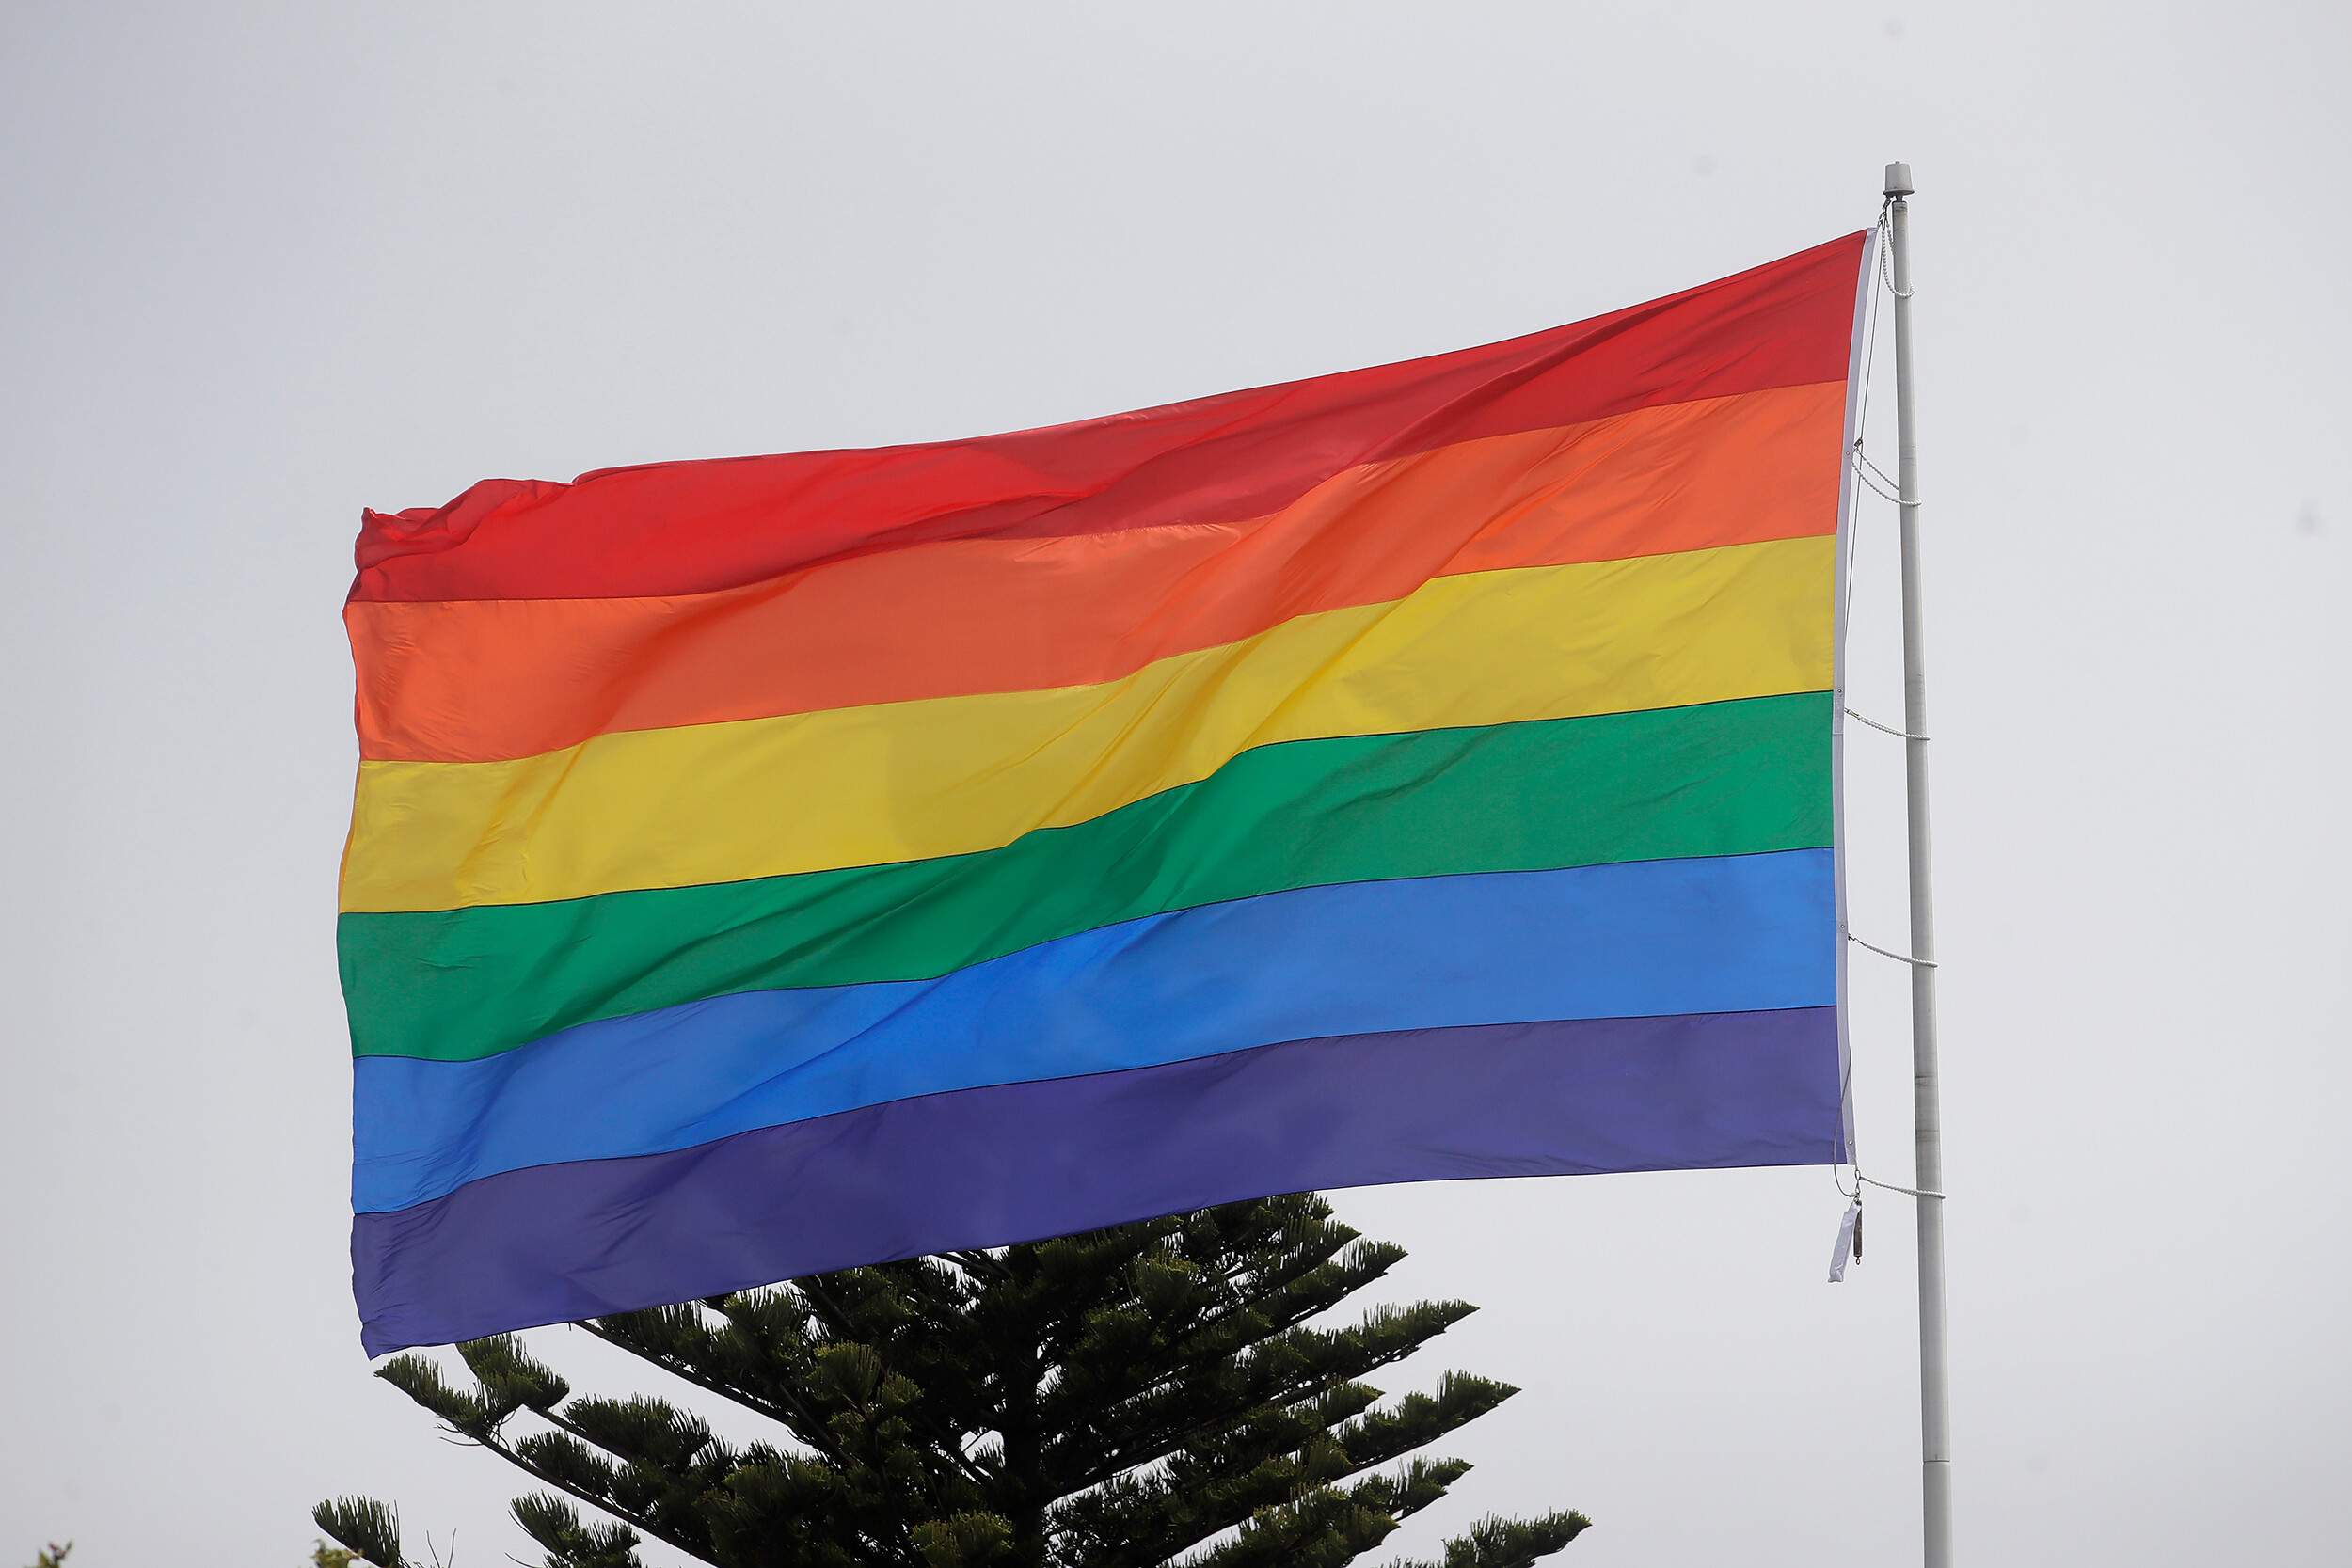 LGBTQ groups across the US consider a new flag meant to be more inclusive of the transgender community and people of color